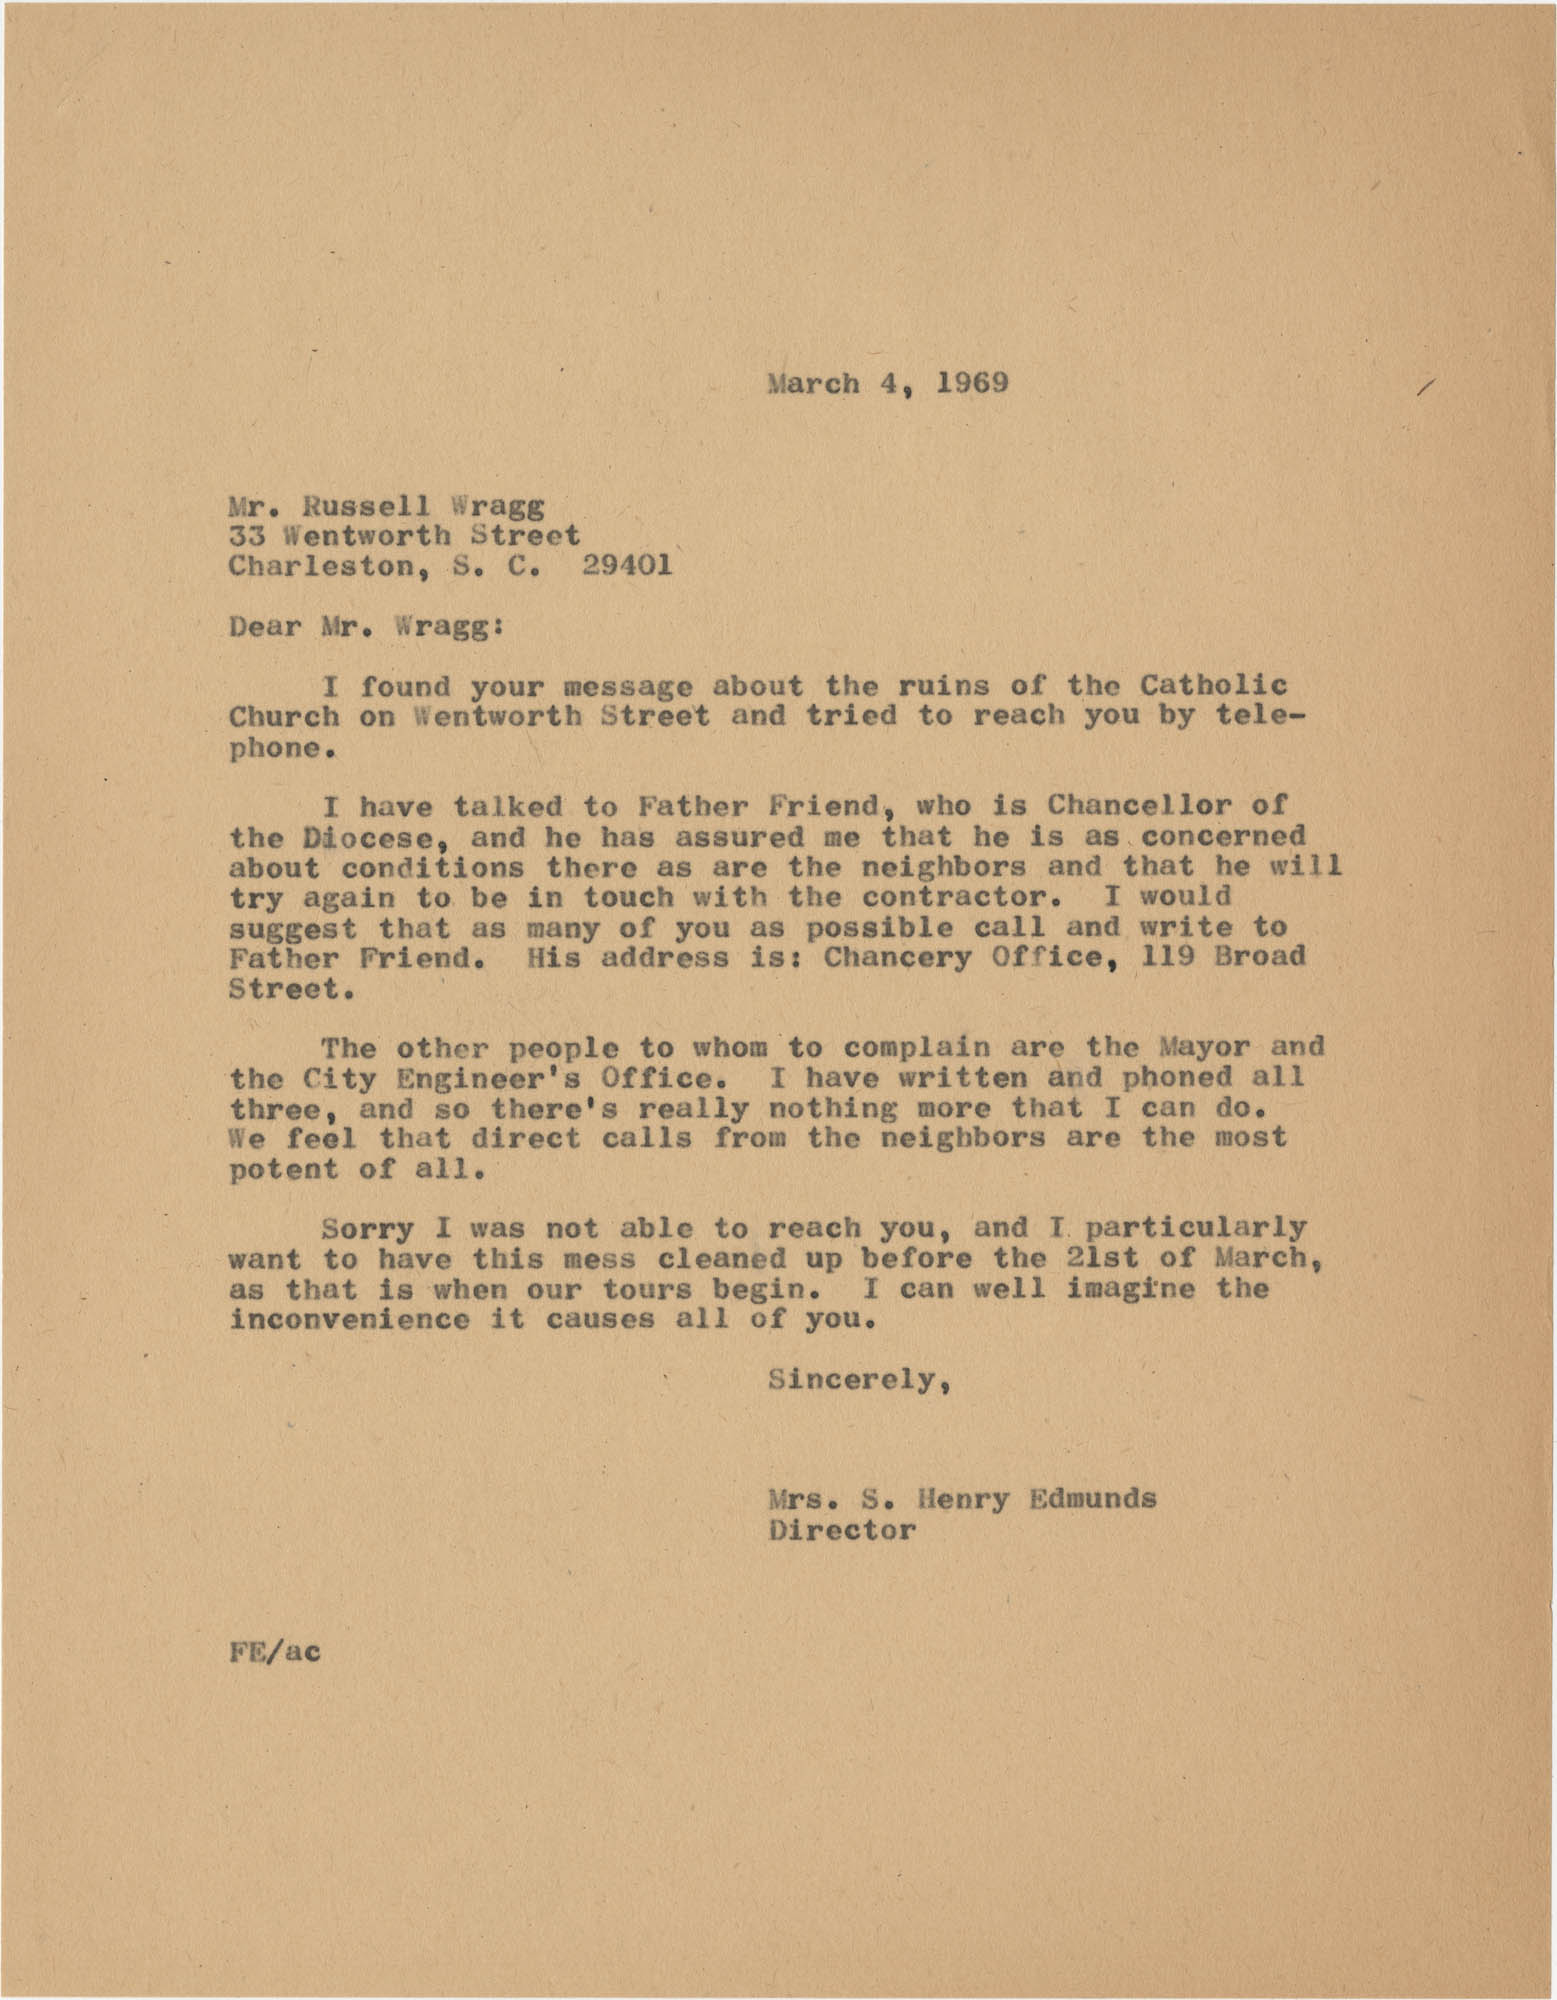 Letter from Mrs. S. Henry Edmunds to Mr. Russell Wragg